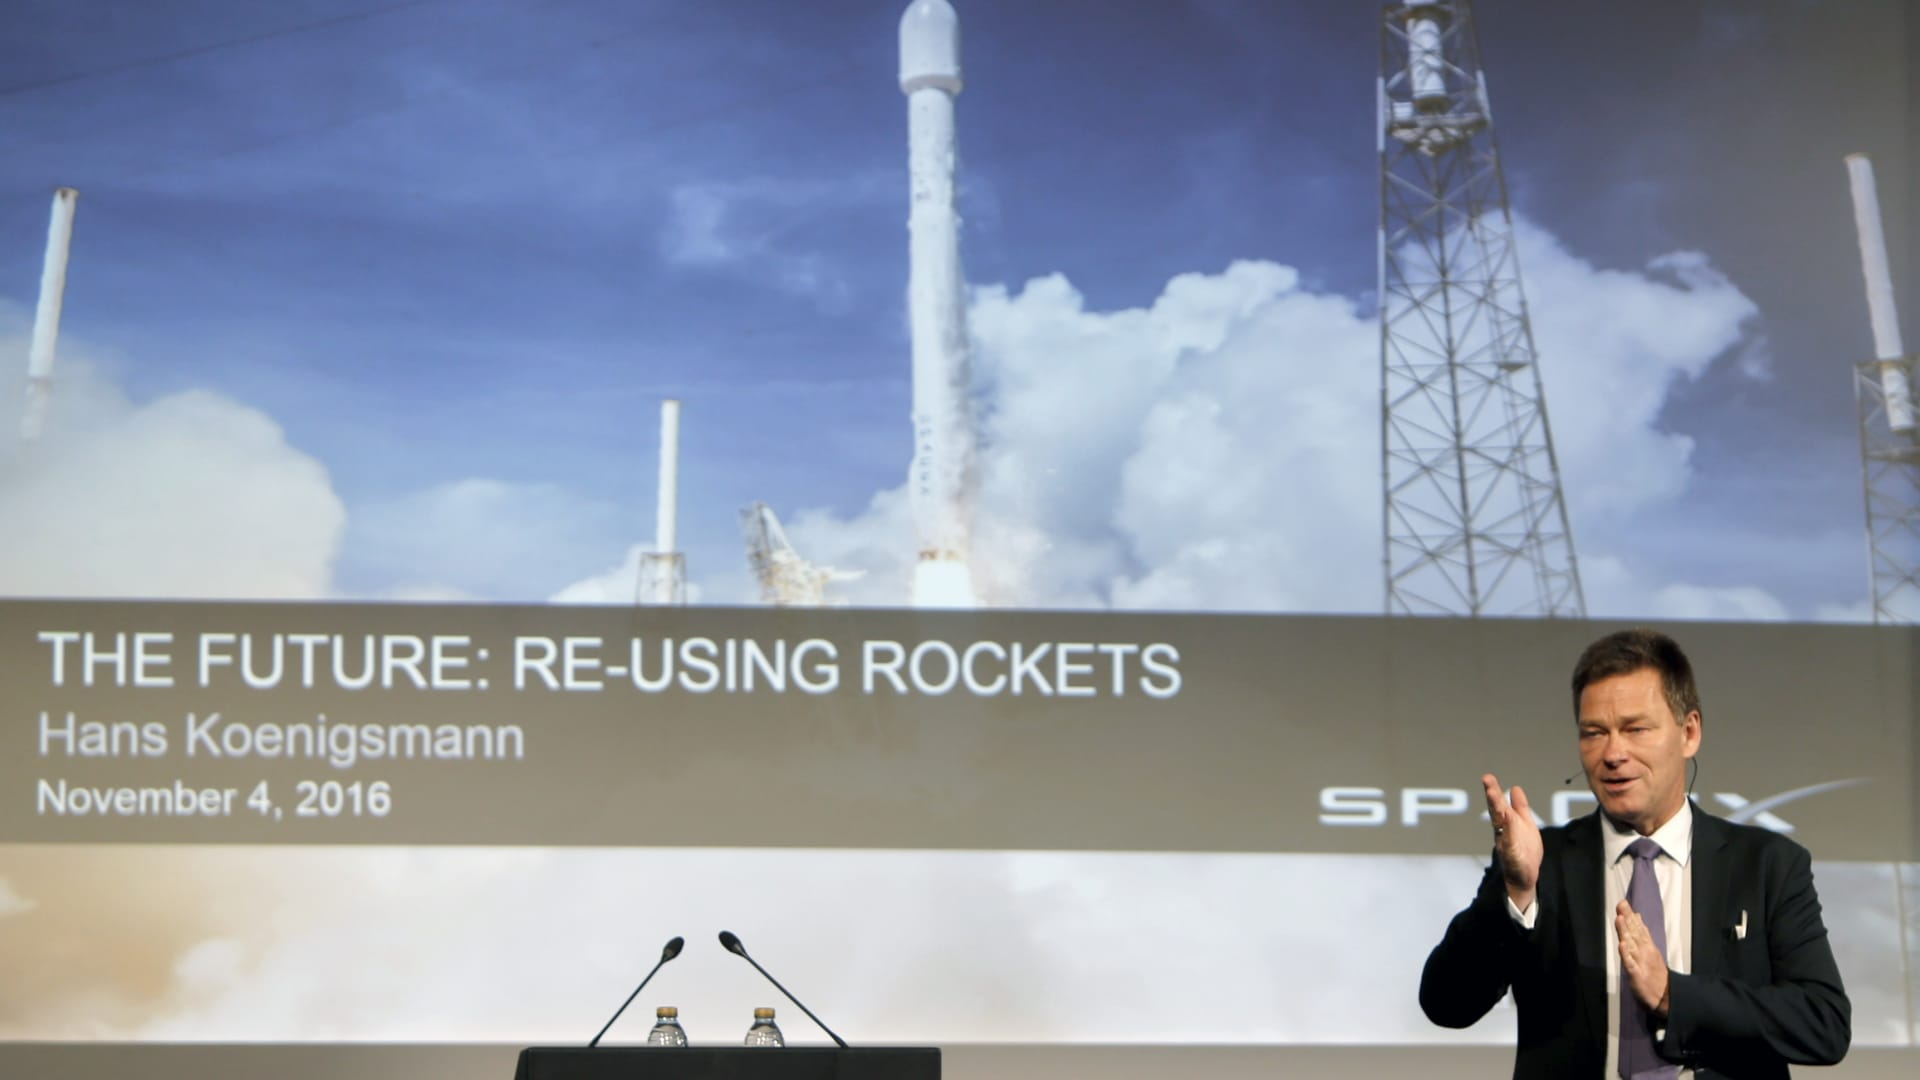 Hans Koenigsmann, VP of Mission Assurance at SpaceX, speaks at the World Space Risk Forum (WSRF) in Dubai on November 4, 2016.